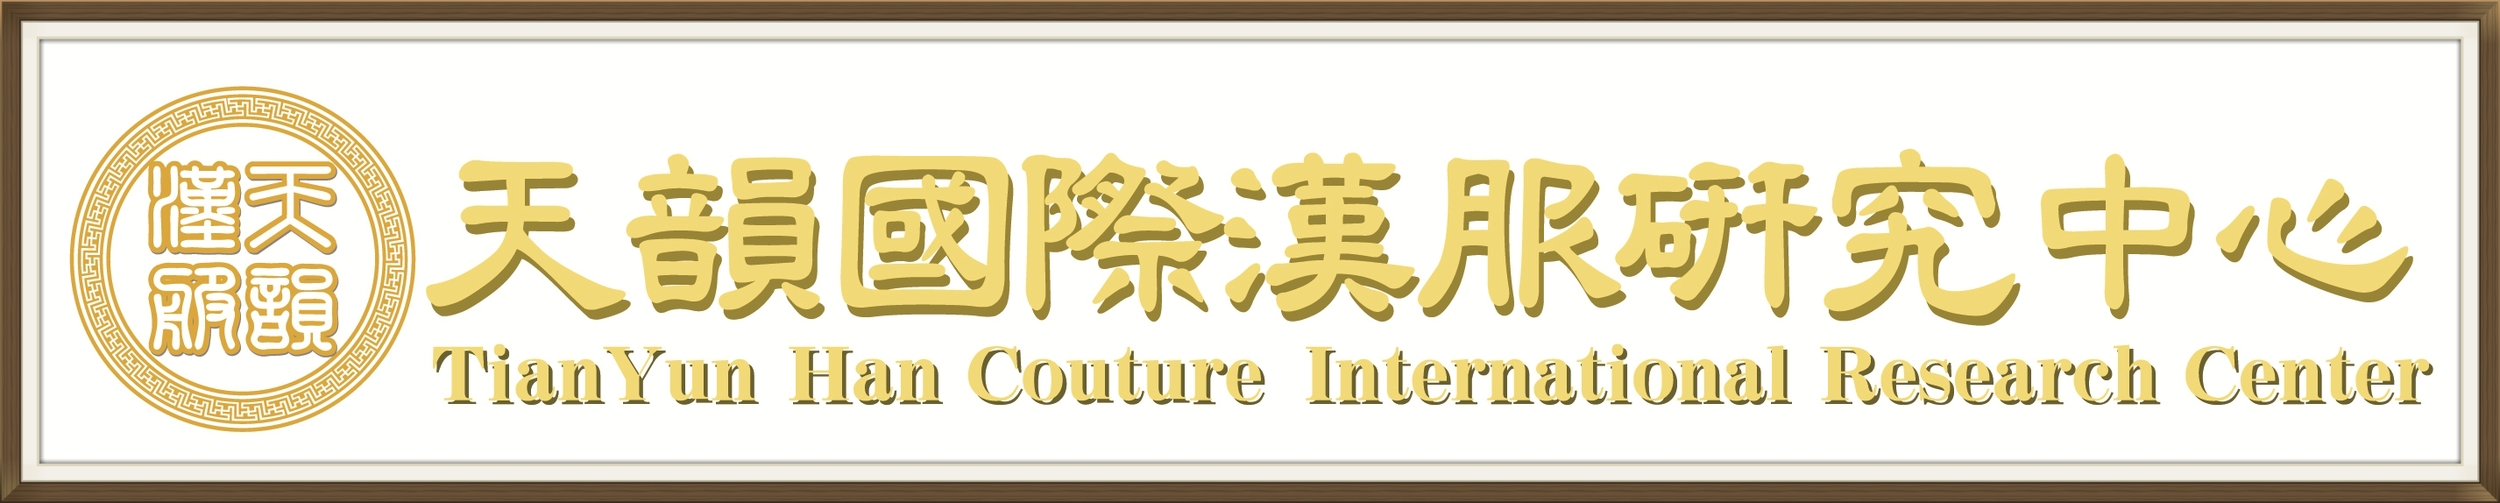 TianYun Han Couture International Research Center is a non-profit organization dedicated to researching and promoting traditional Chinese sartorial culture.